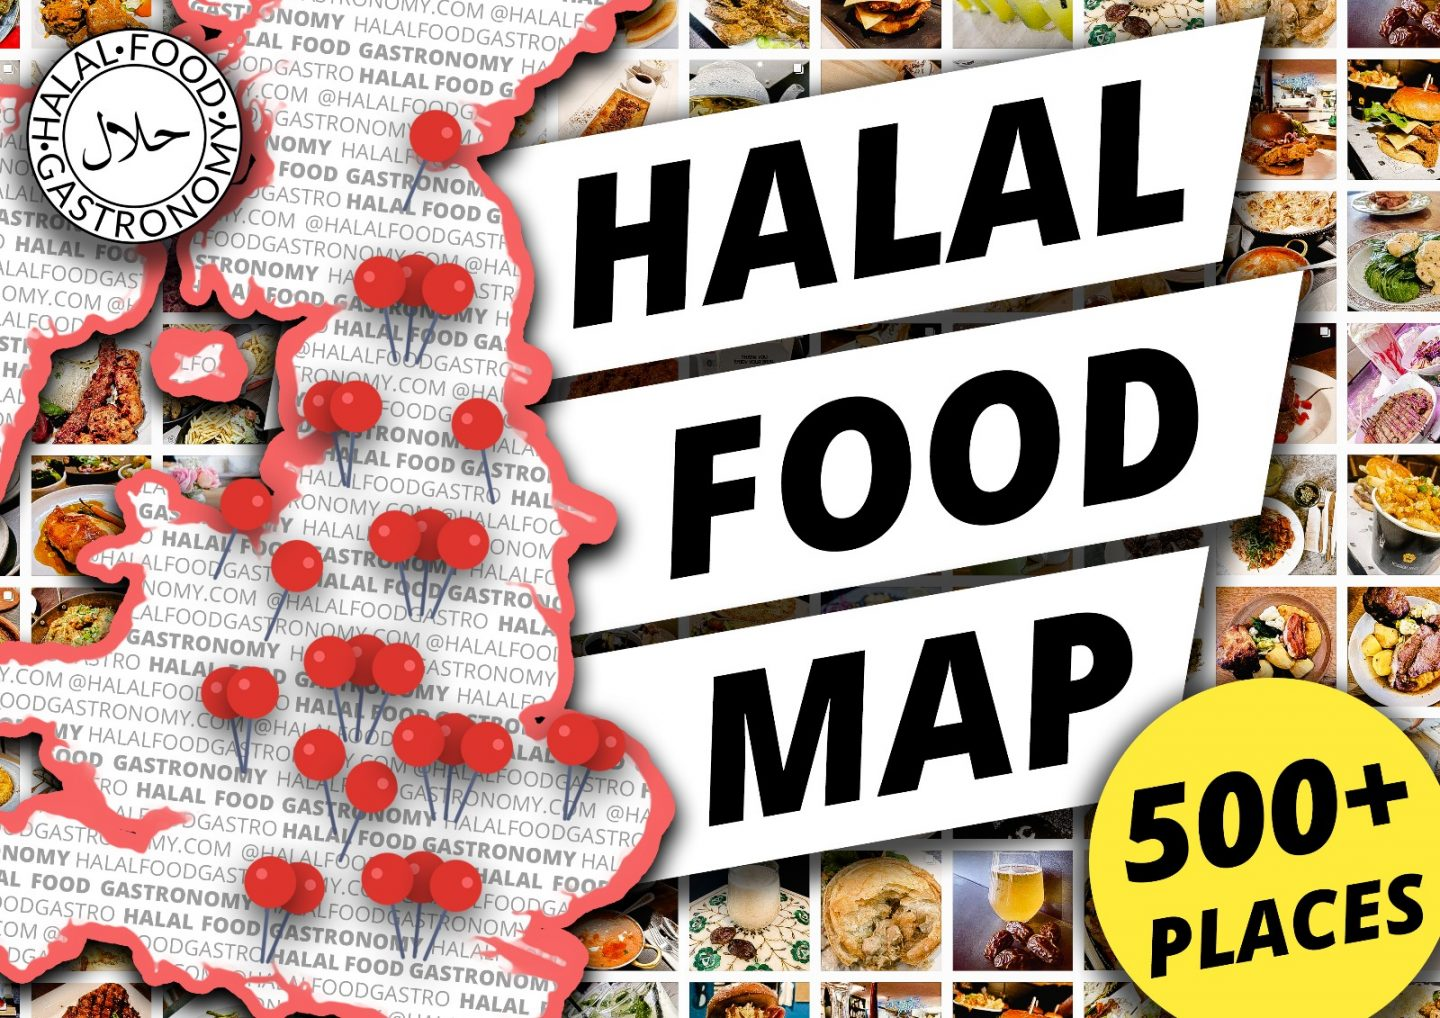 The Best Fully Halal Places To Eat In Bolton Halal Food Gastronomy